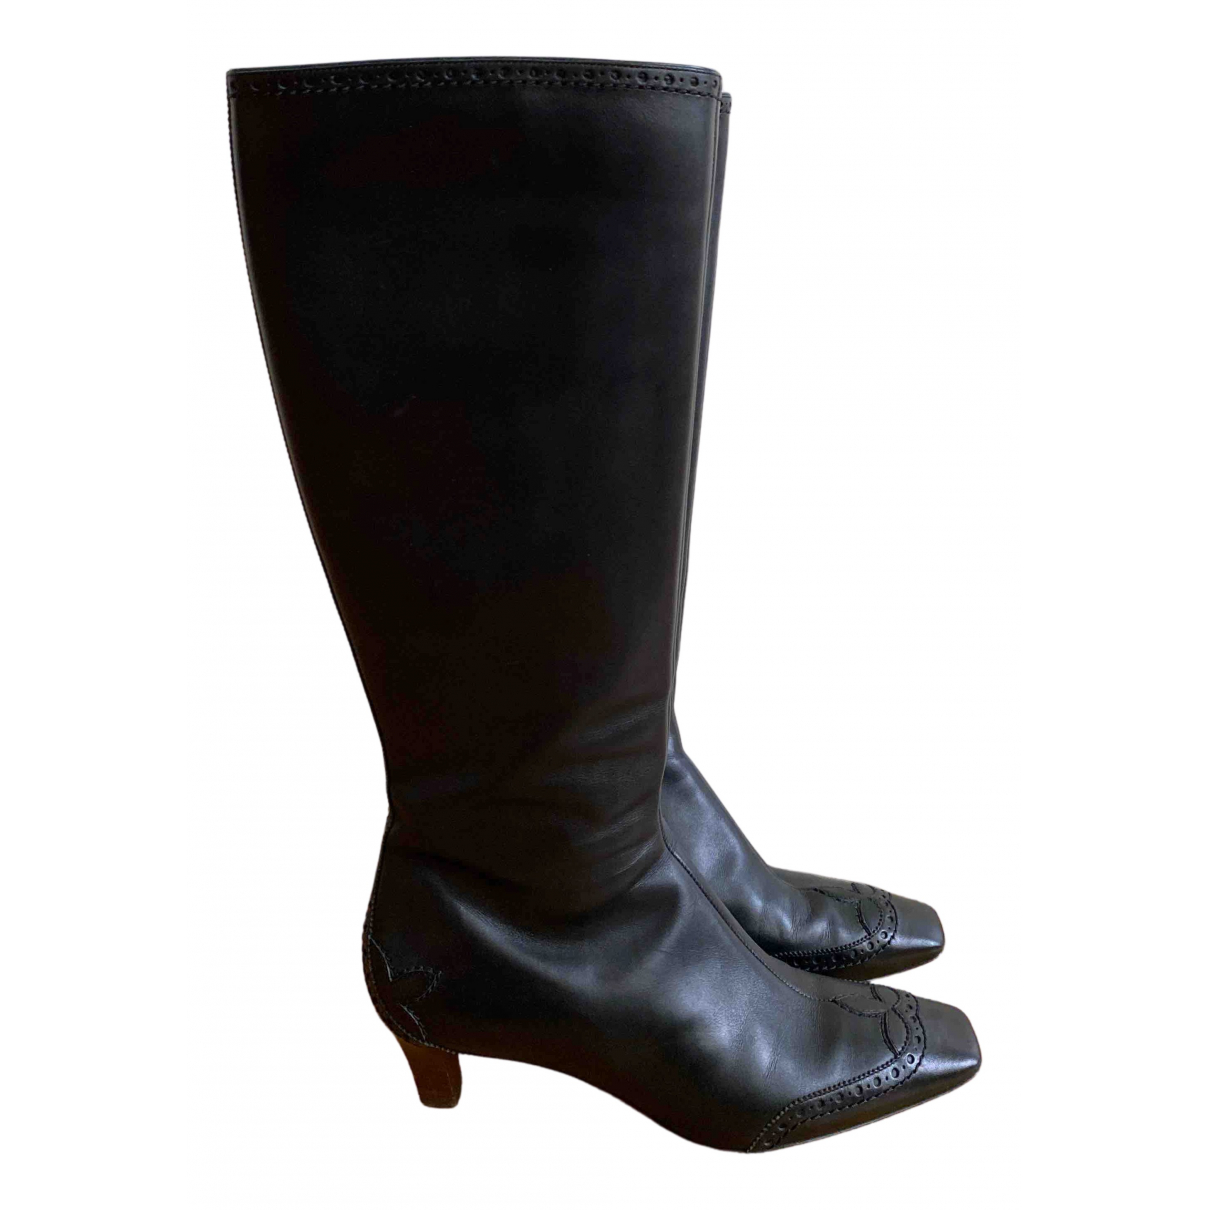 Louis Vuitton N Black Leather Boots for Women 38.5 EU